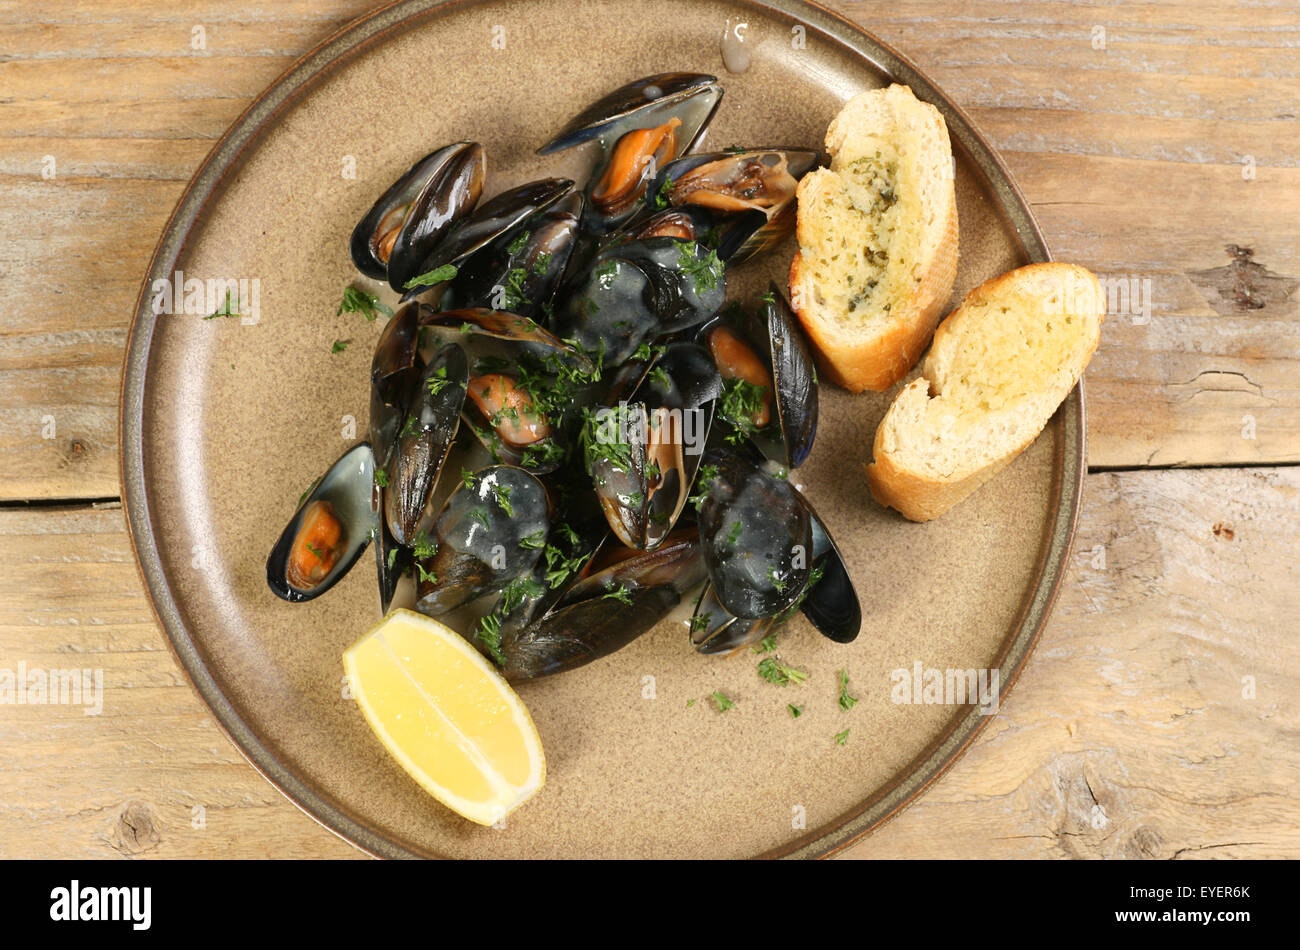 plate of cooked mussels in white wine sauce - Stock Image